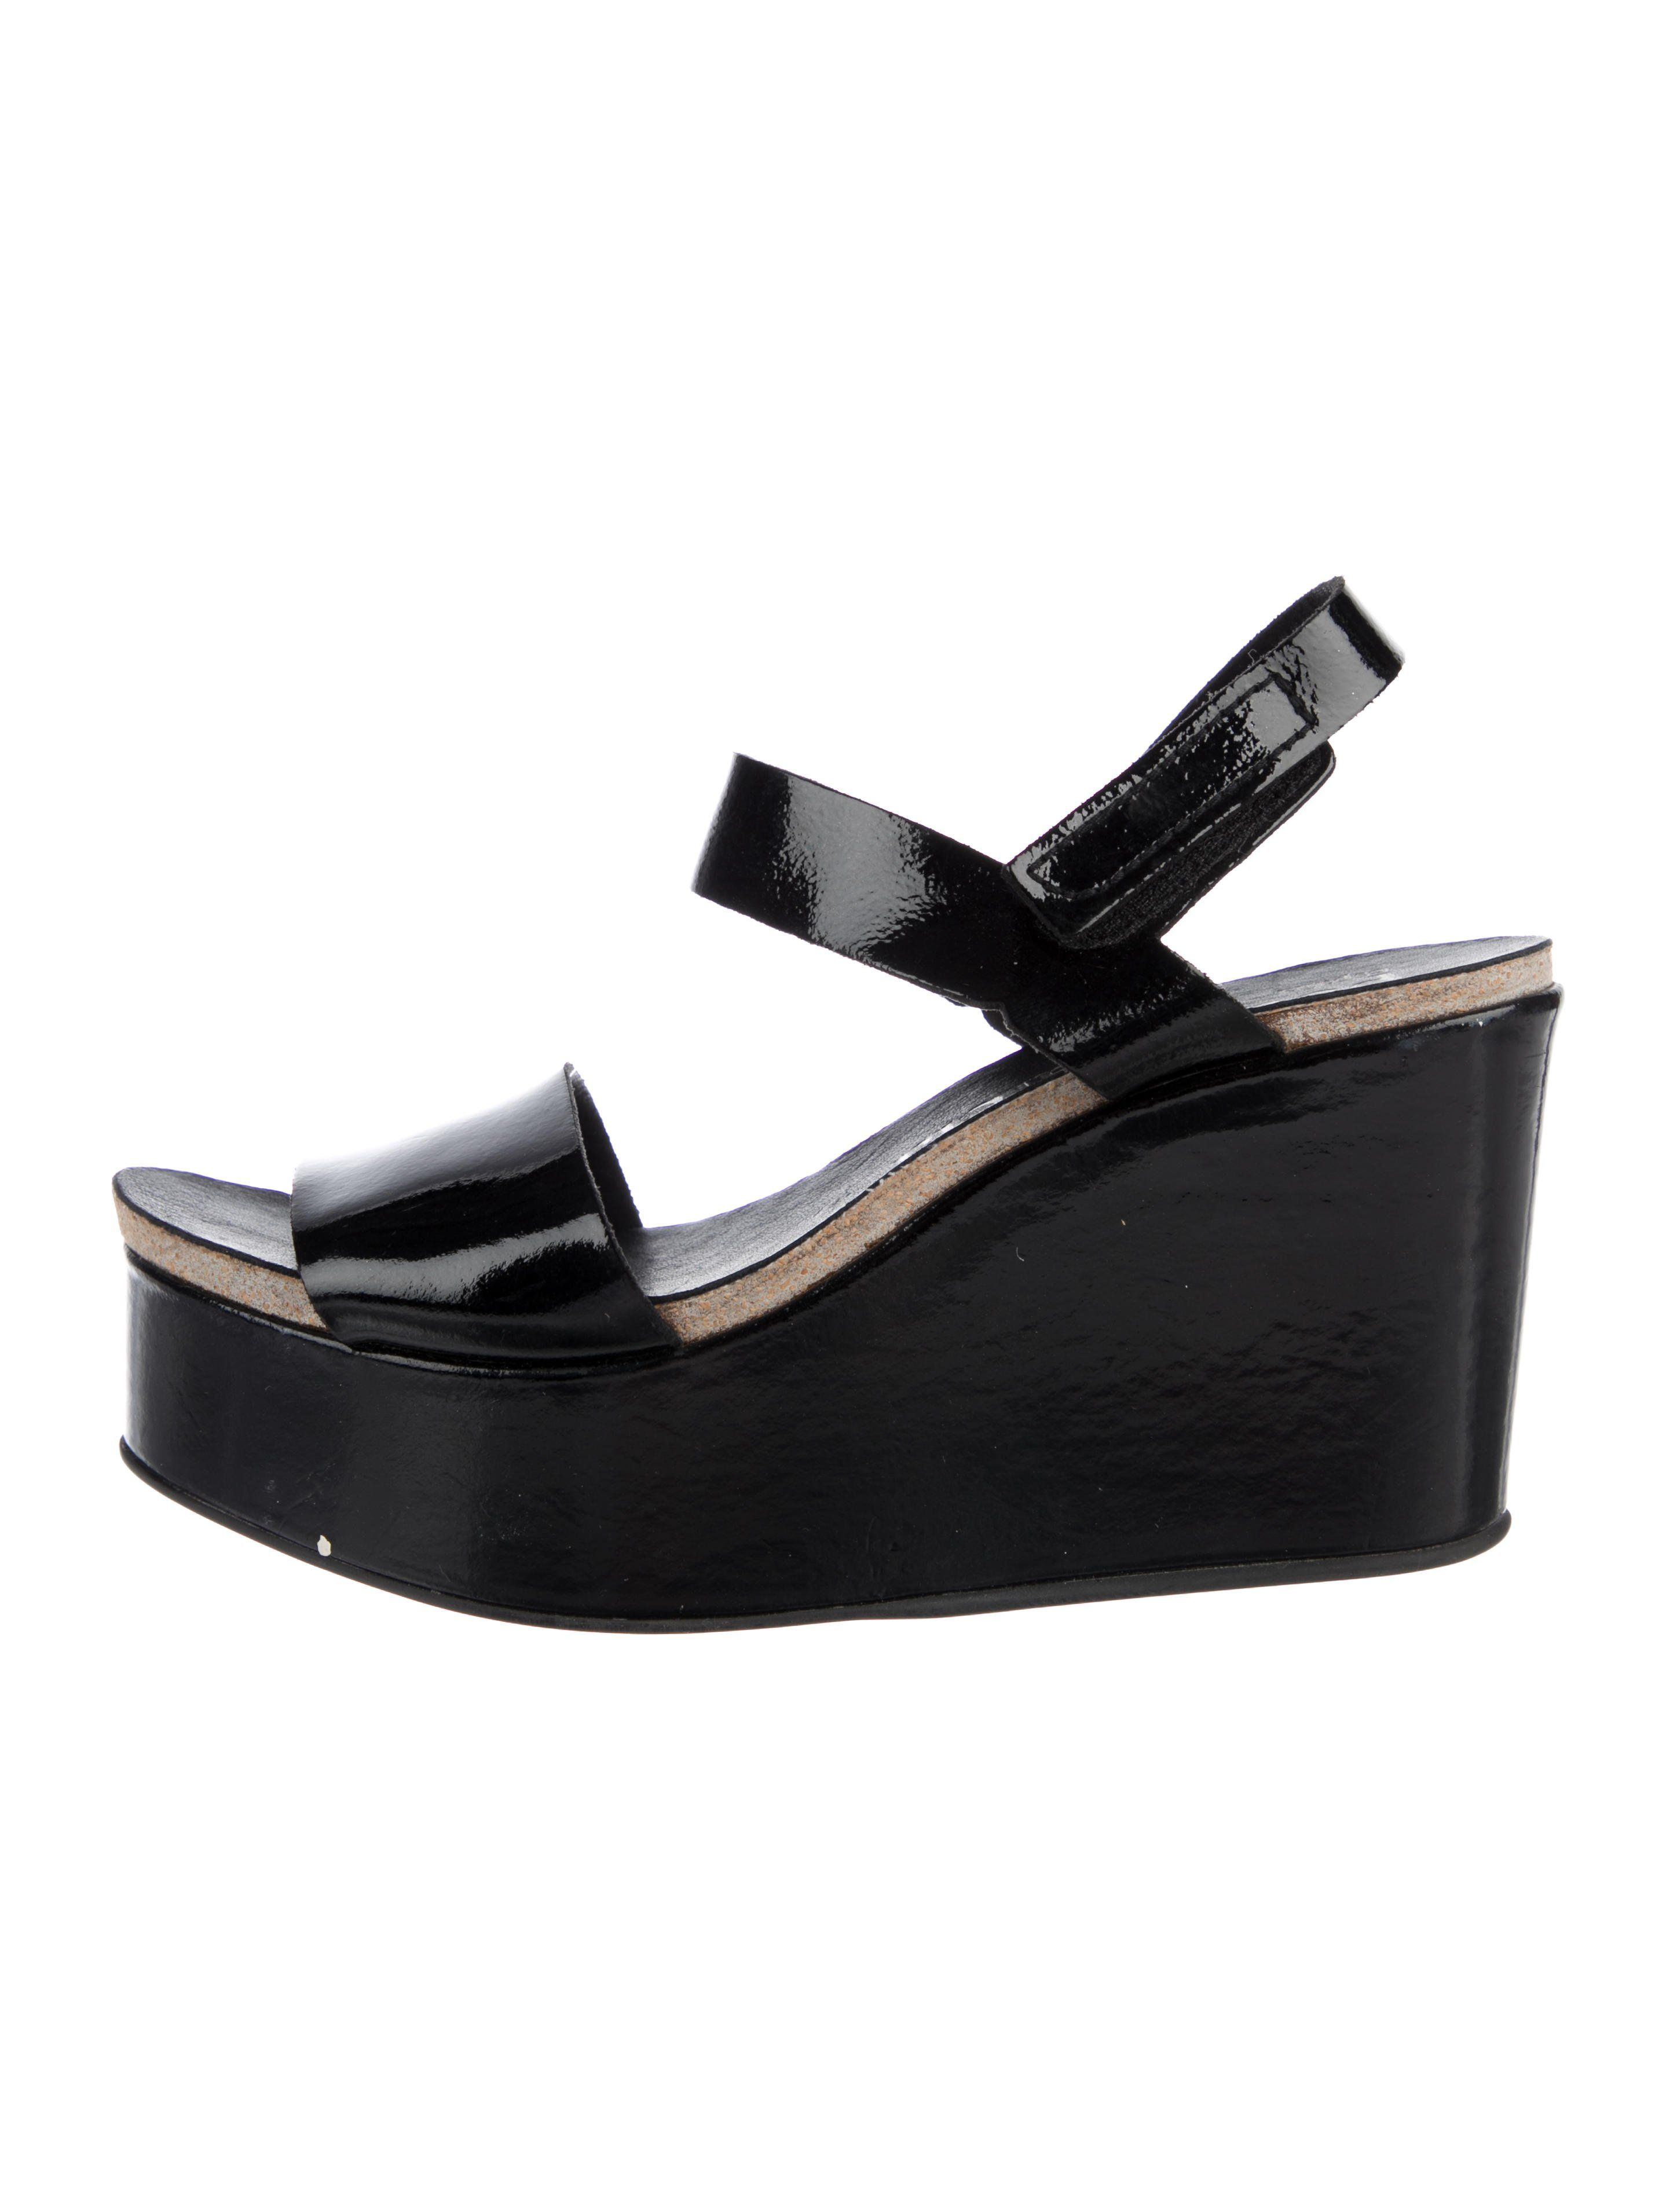 Black Patent Leather Pedro Garcia Dulce Wedge Platform Sandals With Covered Heels Rubber Soles And Velcro Closures A Wedges Wedge Sandals Black Patent Leather